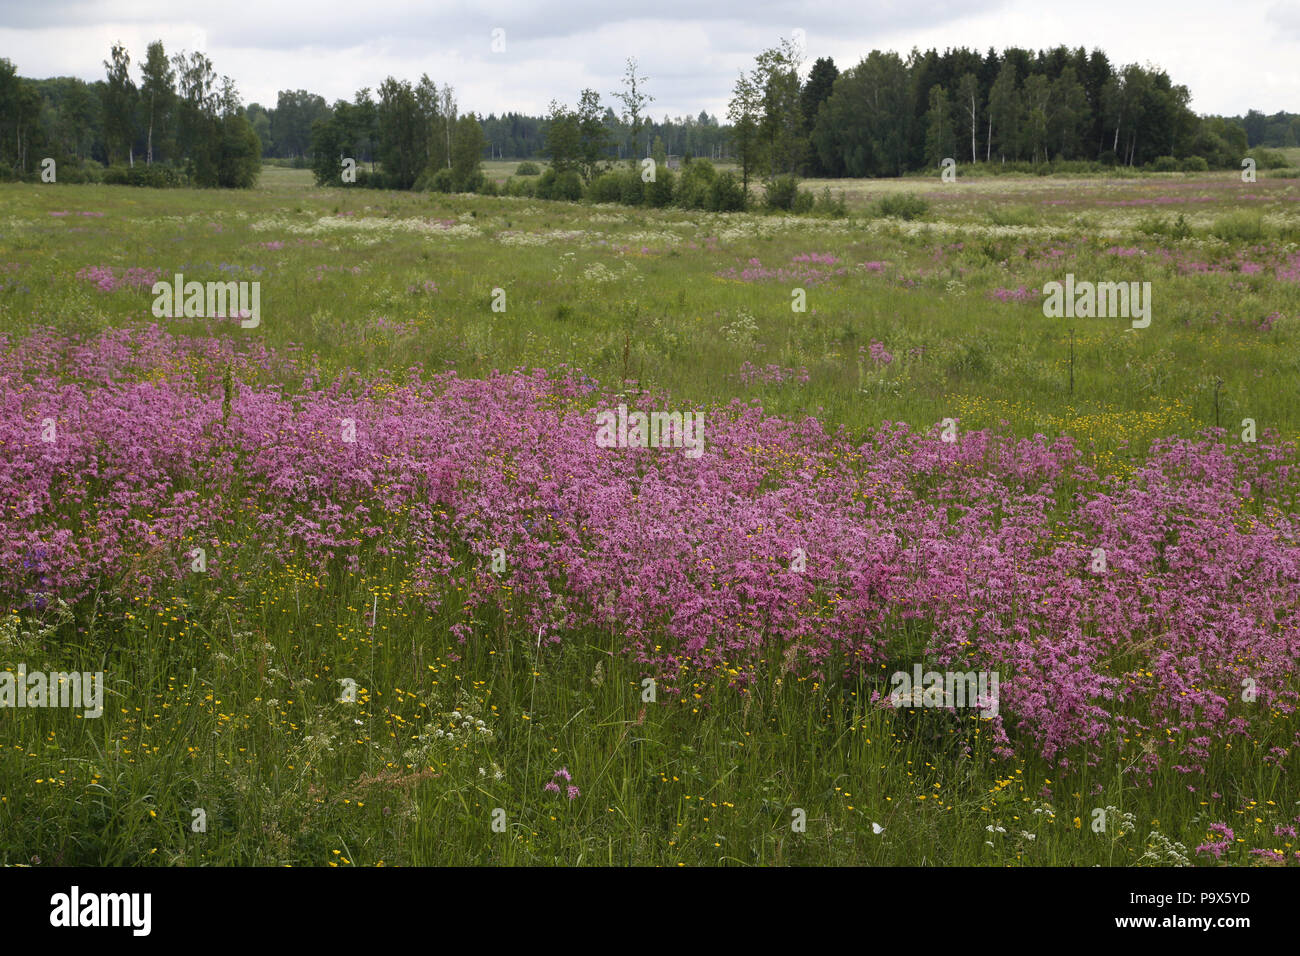 Swedish landscape with stand of Ragged Robin, Lychnis flos-cuculi - Stock Image